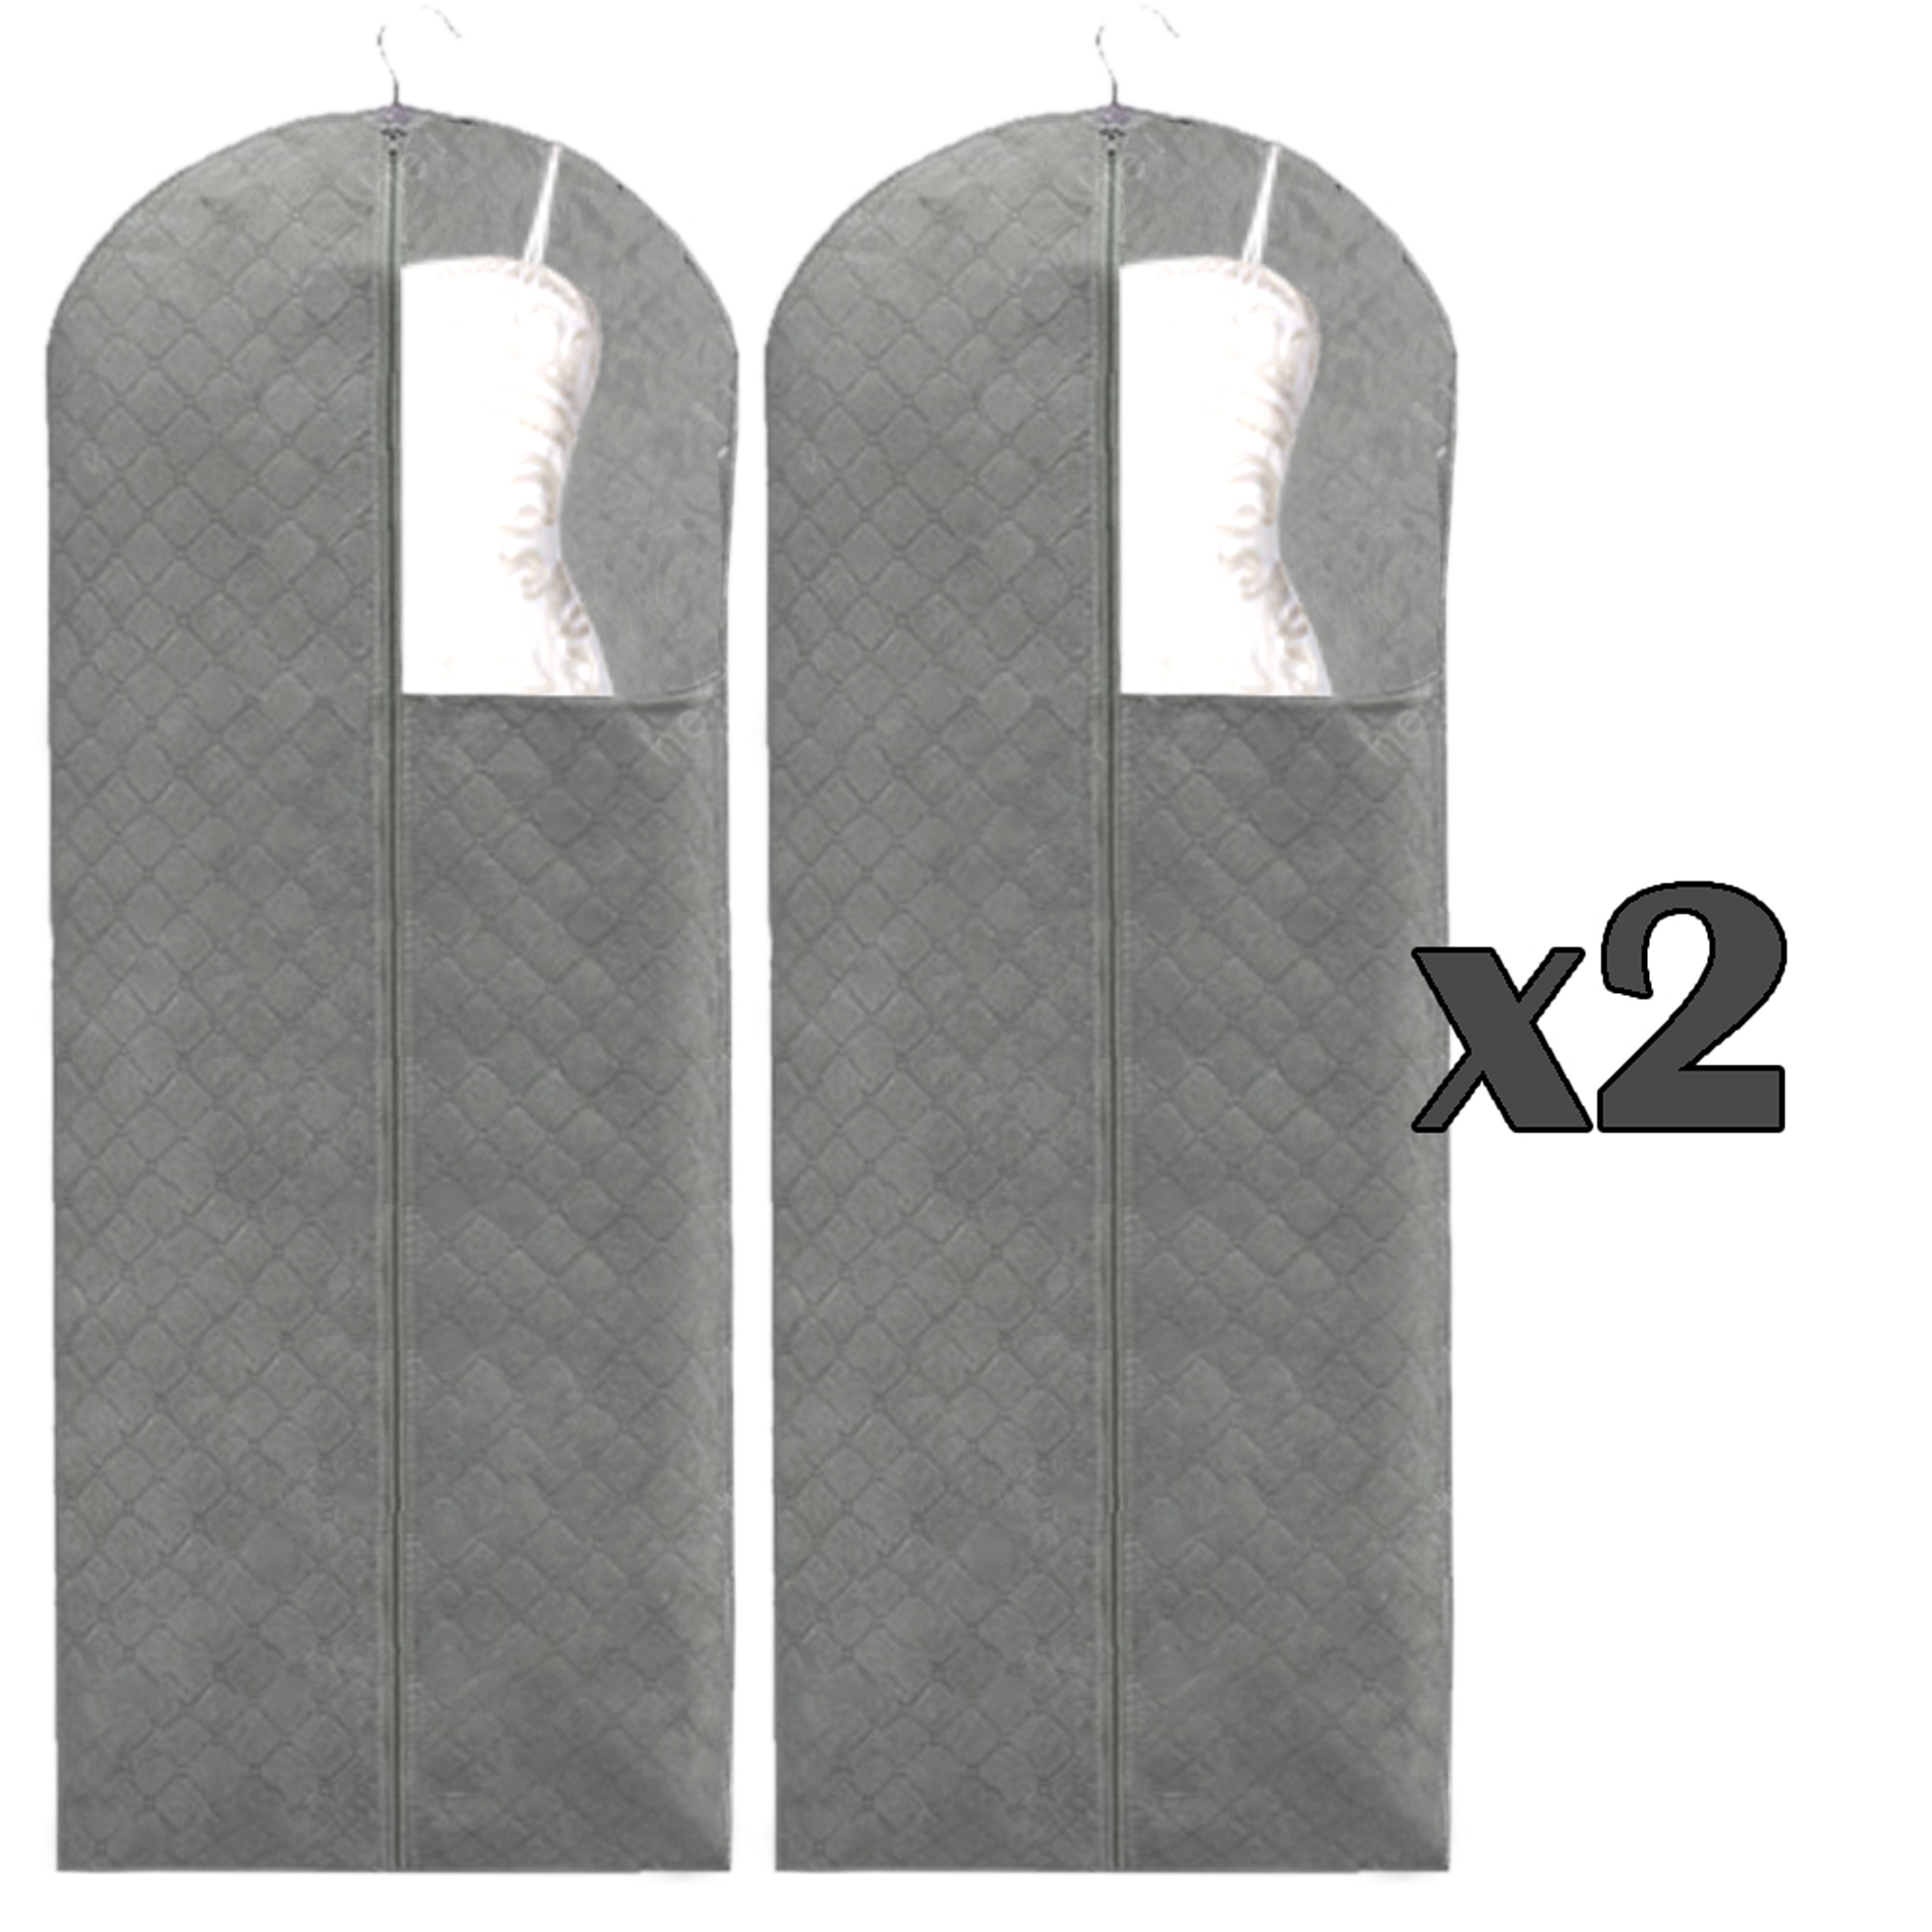 Set of 2, The Elixir Deco 60 Inch Bamboo Charcoal Dress Garment Storage Bag Cover for Long Oversize Clothes, Dust Free